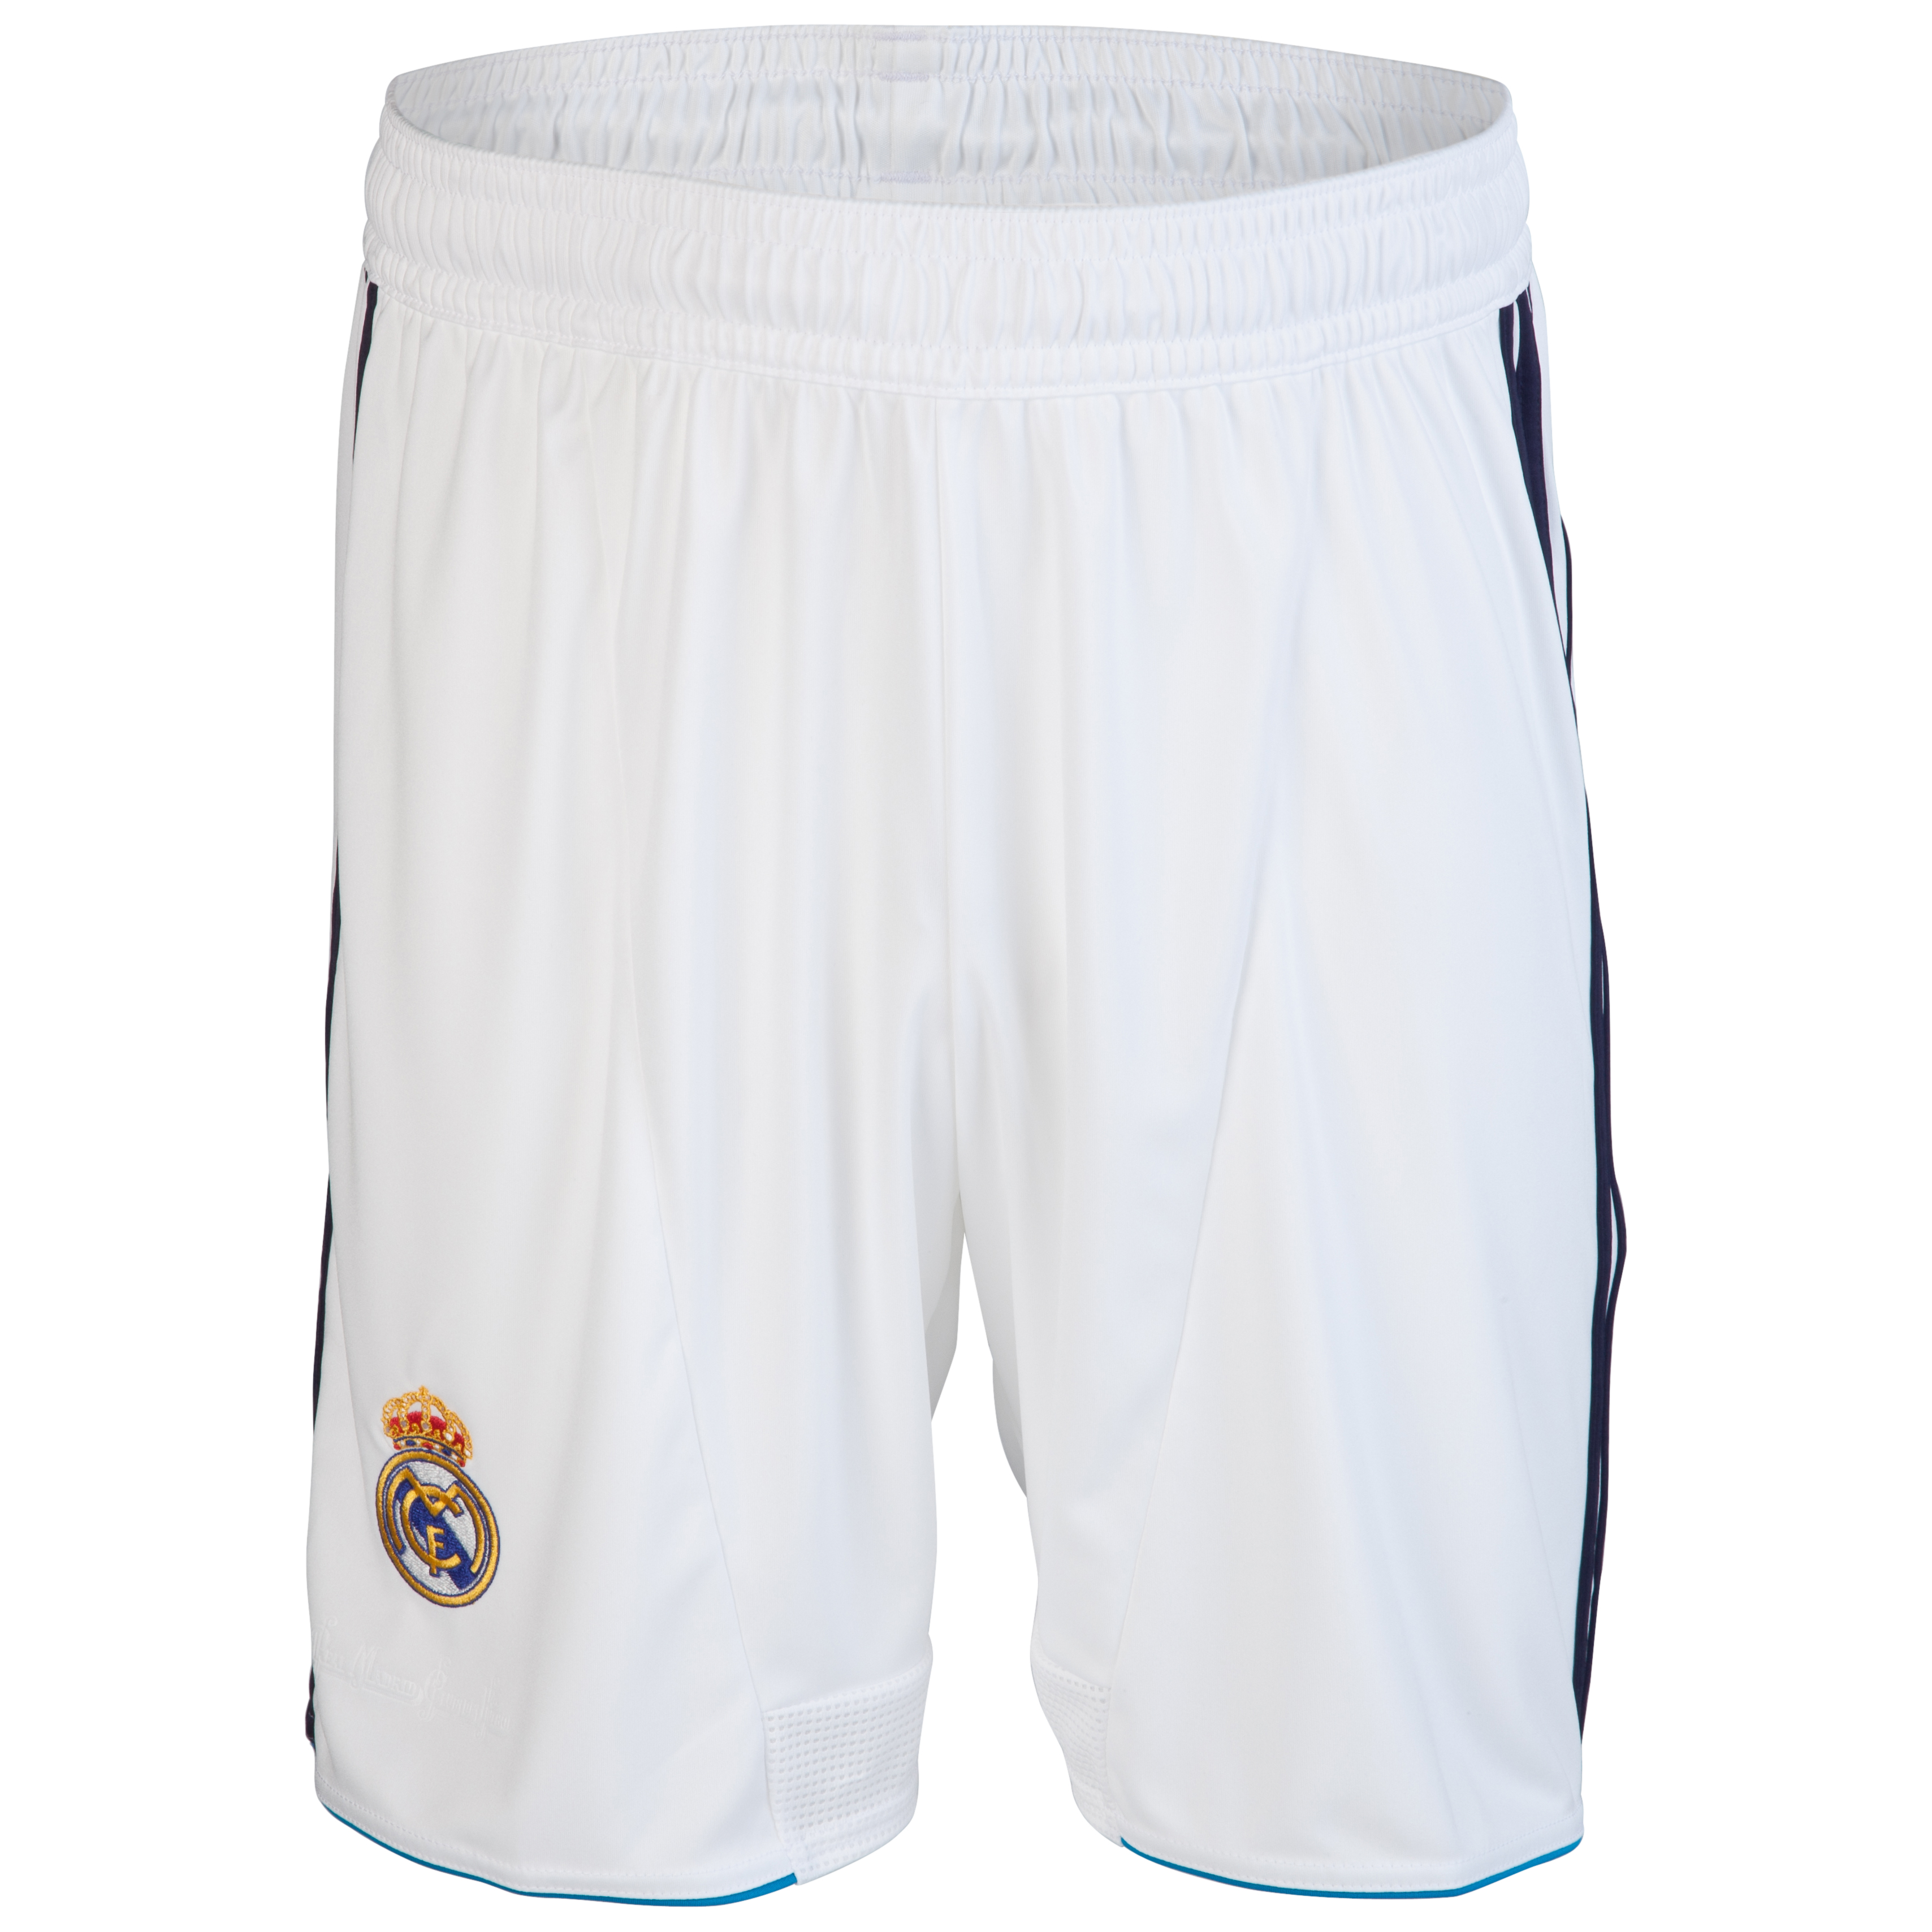 Pantaln corto local Real Madrid 2012/13